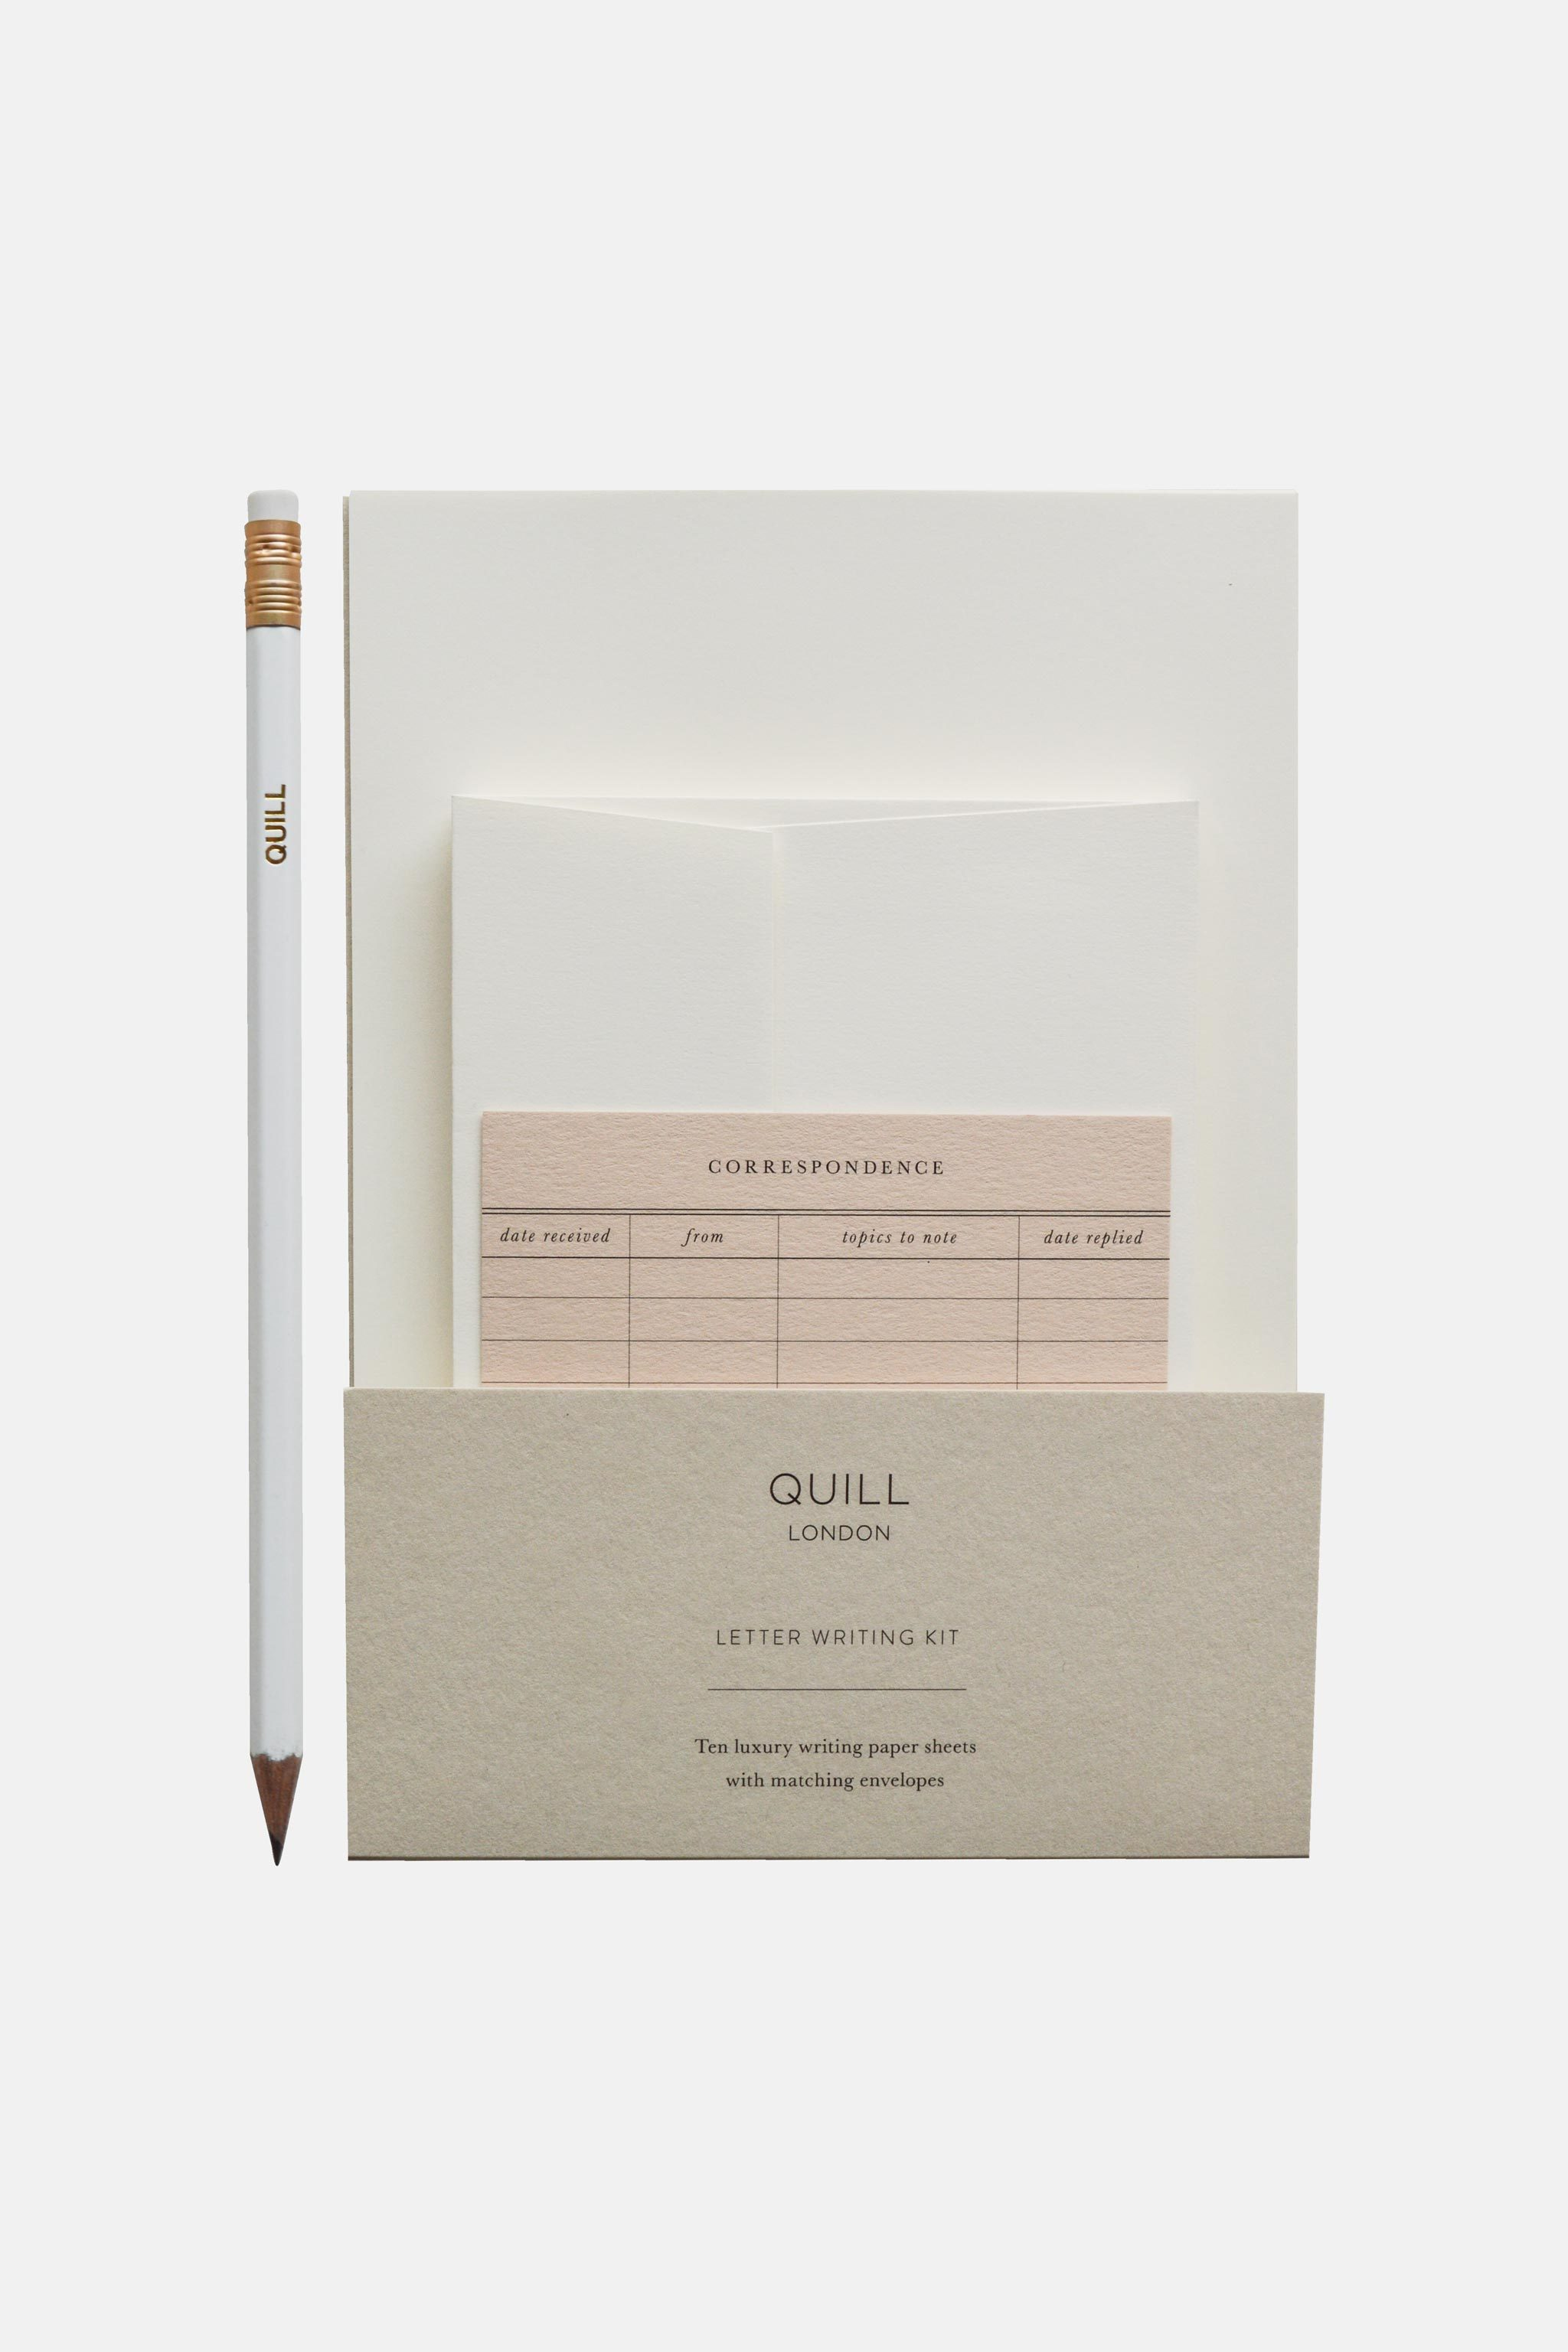 Quill-London_Stationery_Letter-Writing-Kit.jpg